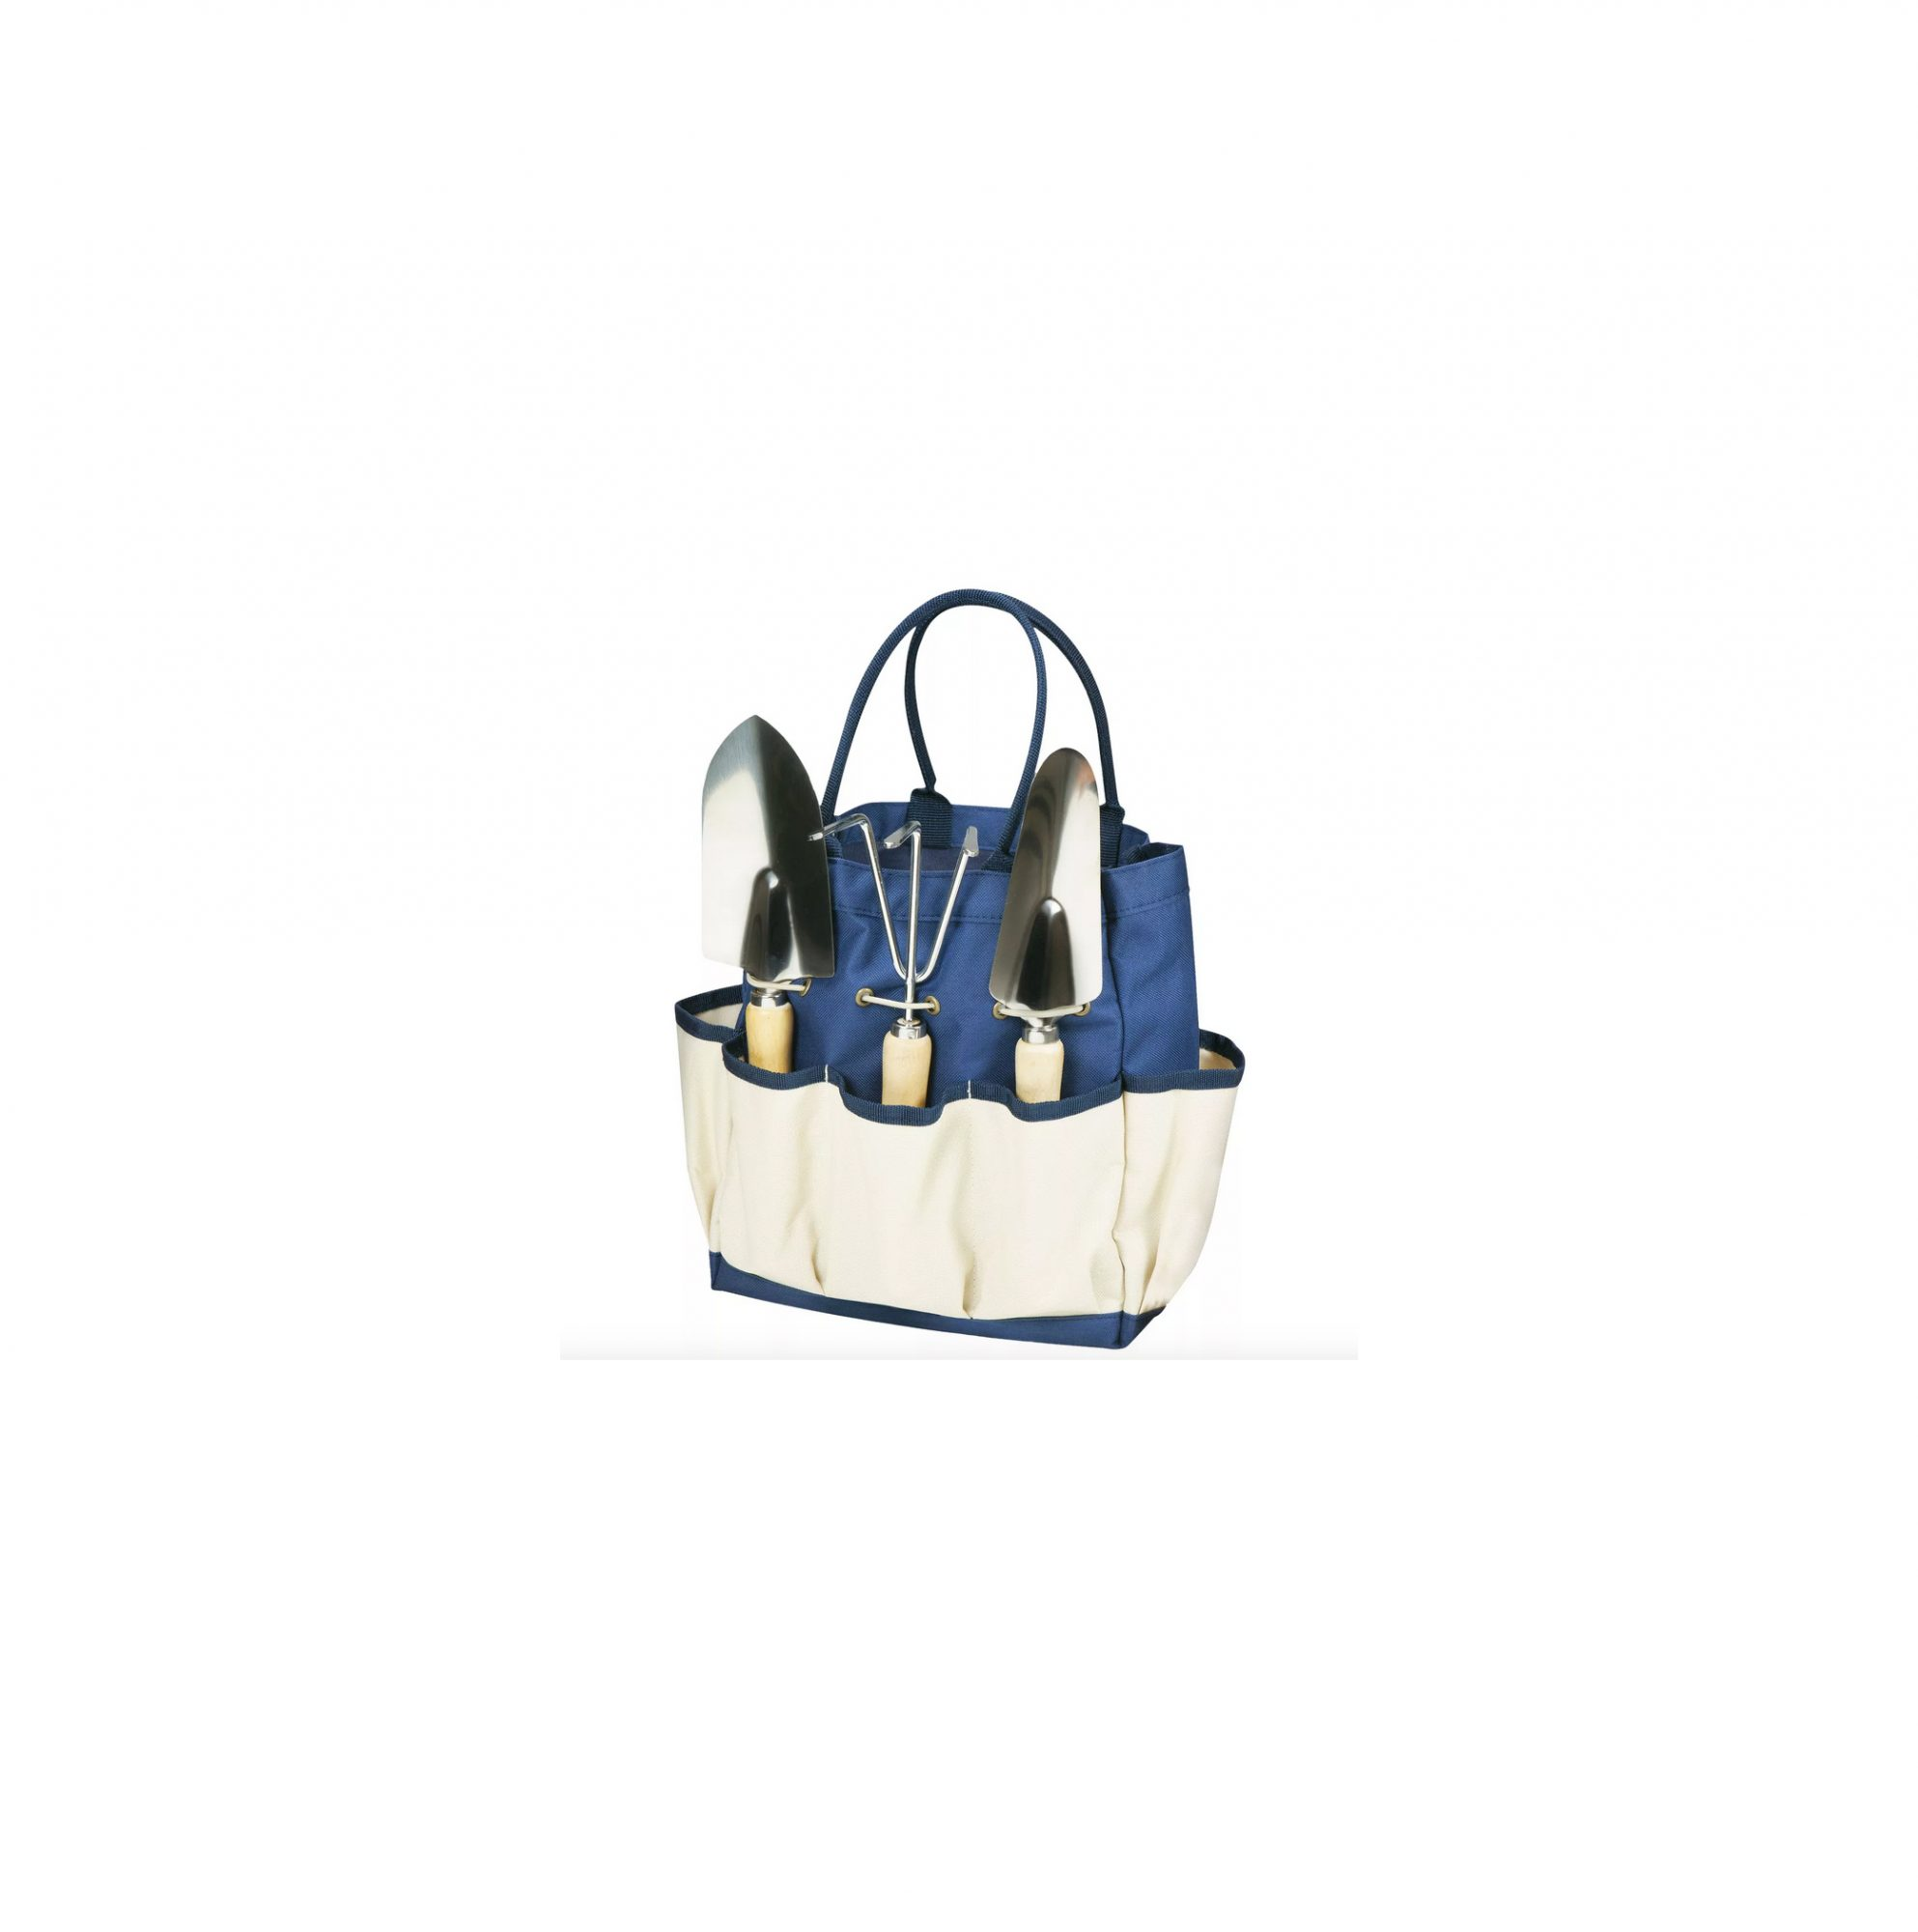 Garden Tool and Tote Set